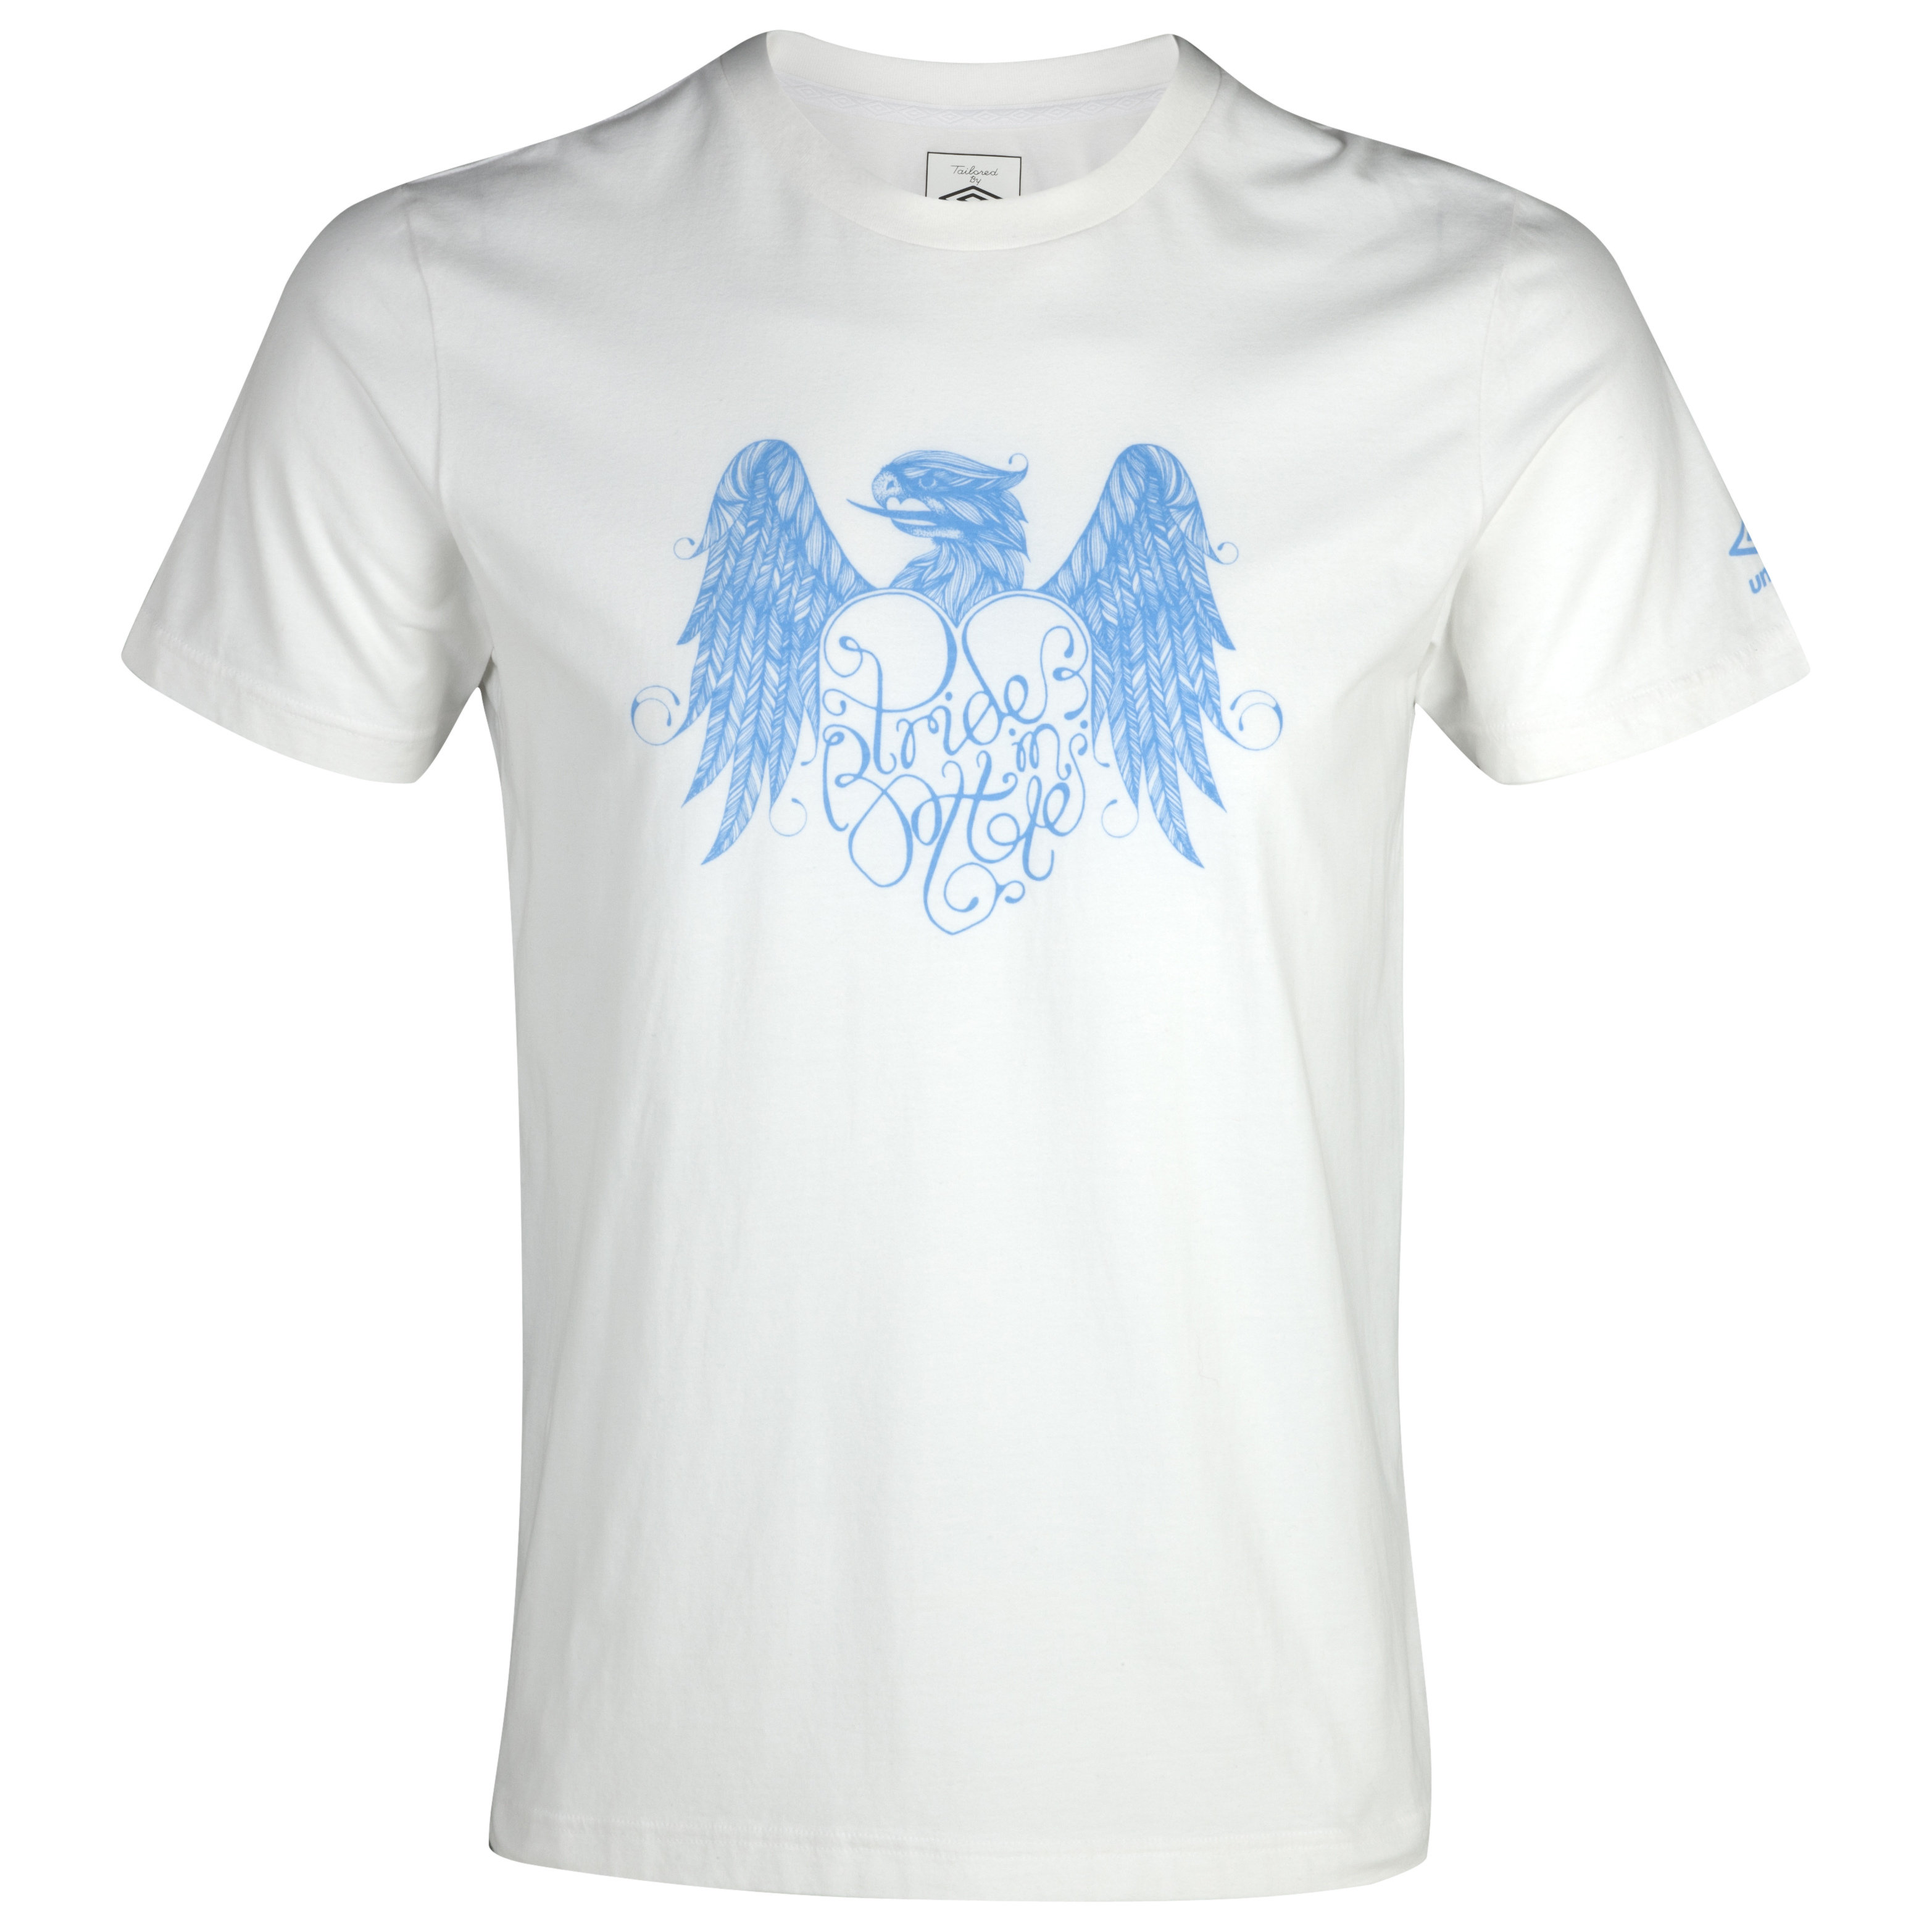 Manchester City Graphic Pride in Battle T-Shirt - White